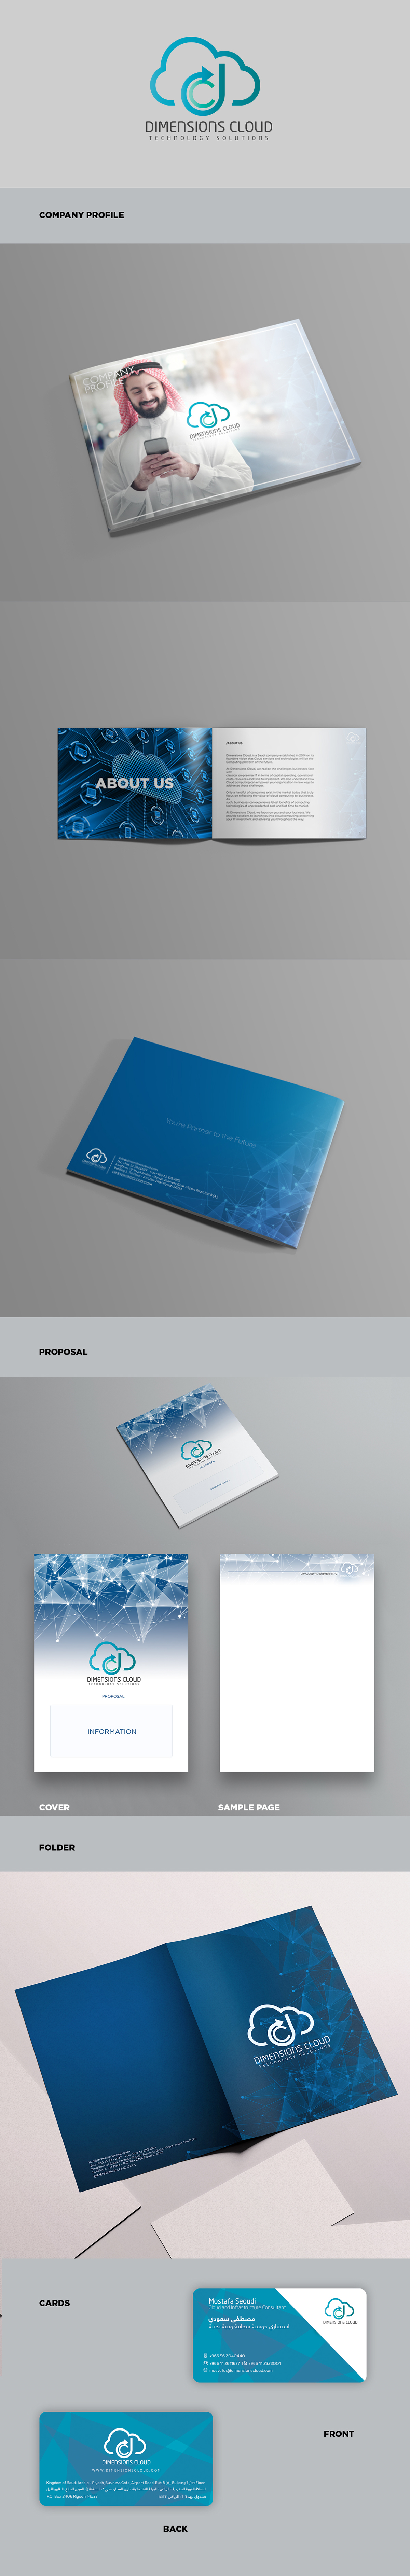 DC Stationery Corporate Identity cloud